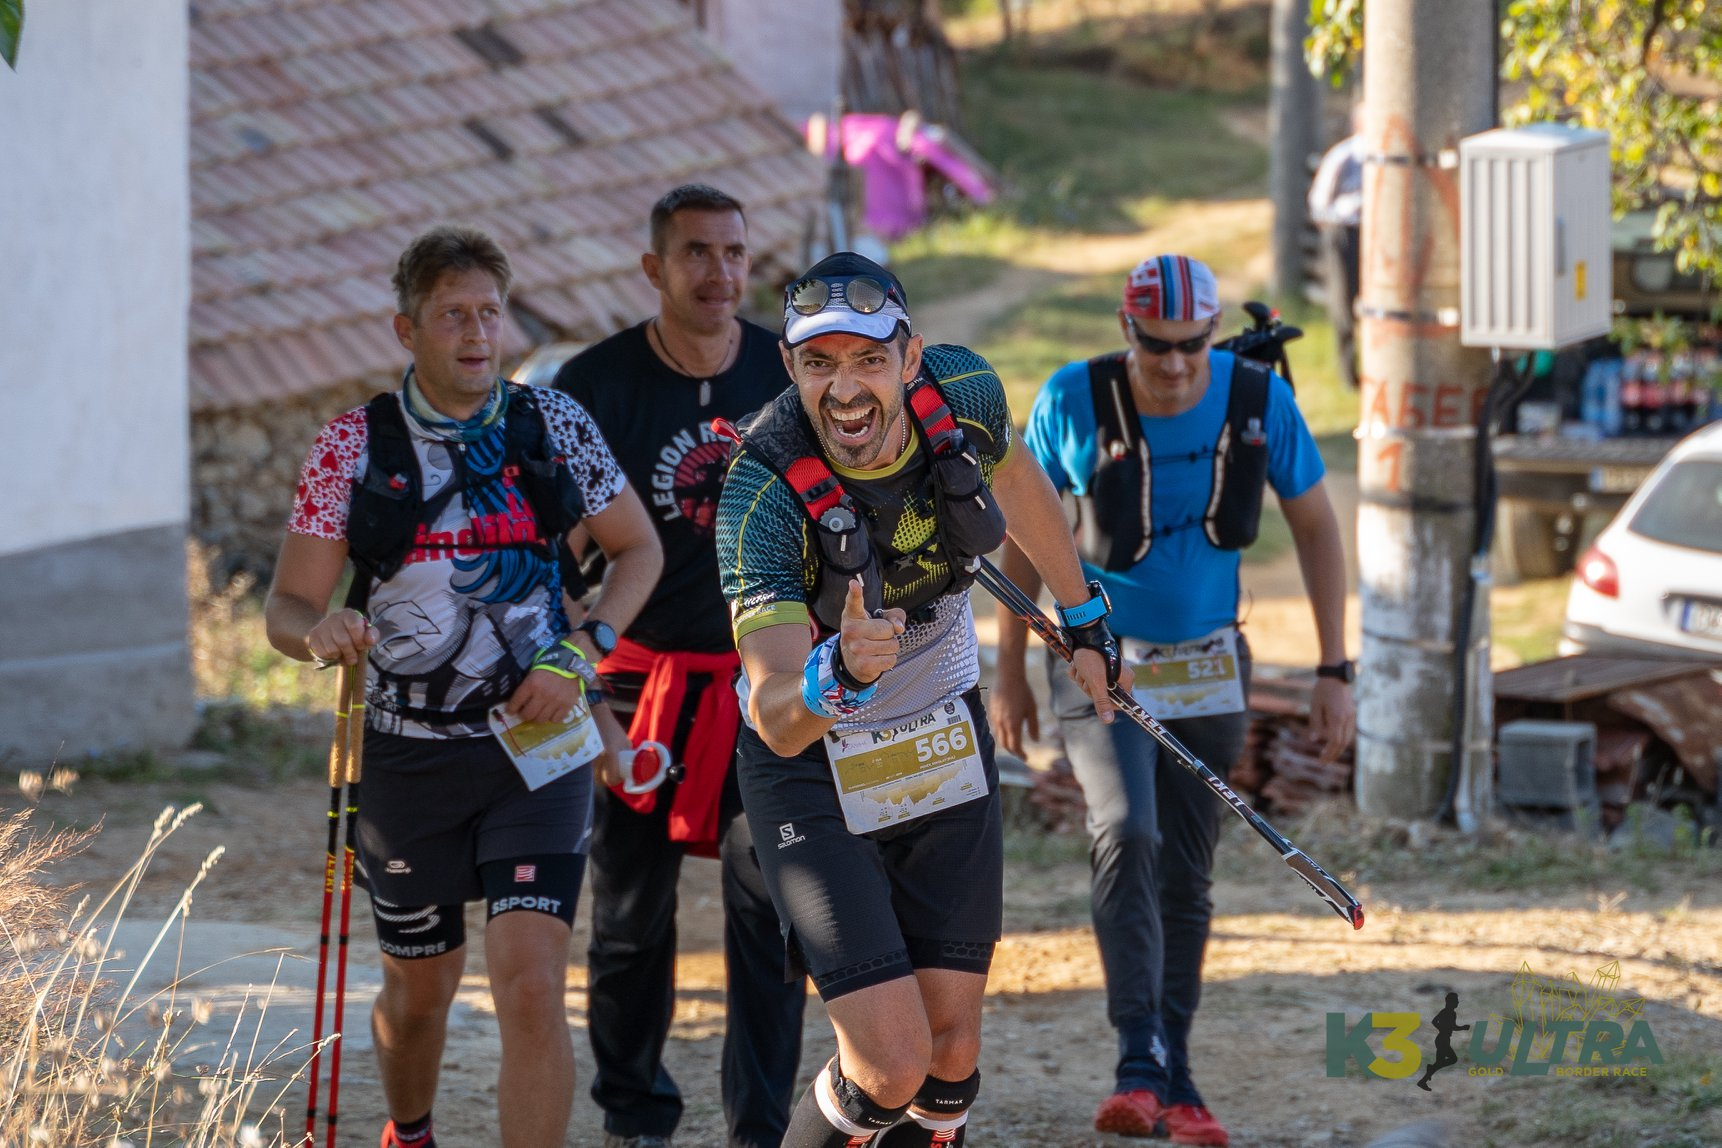 Most memorable moments and most wonderful views from the first edition of K3 ULTRA GBR